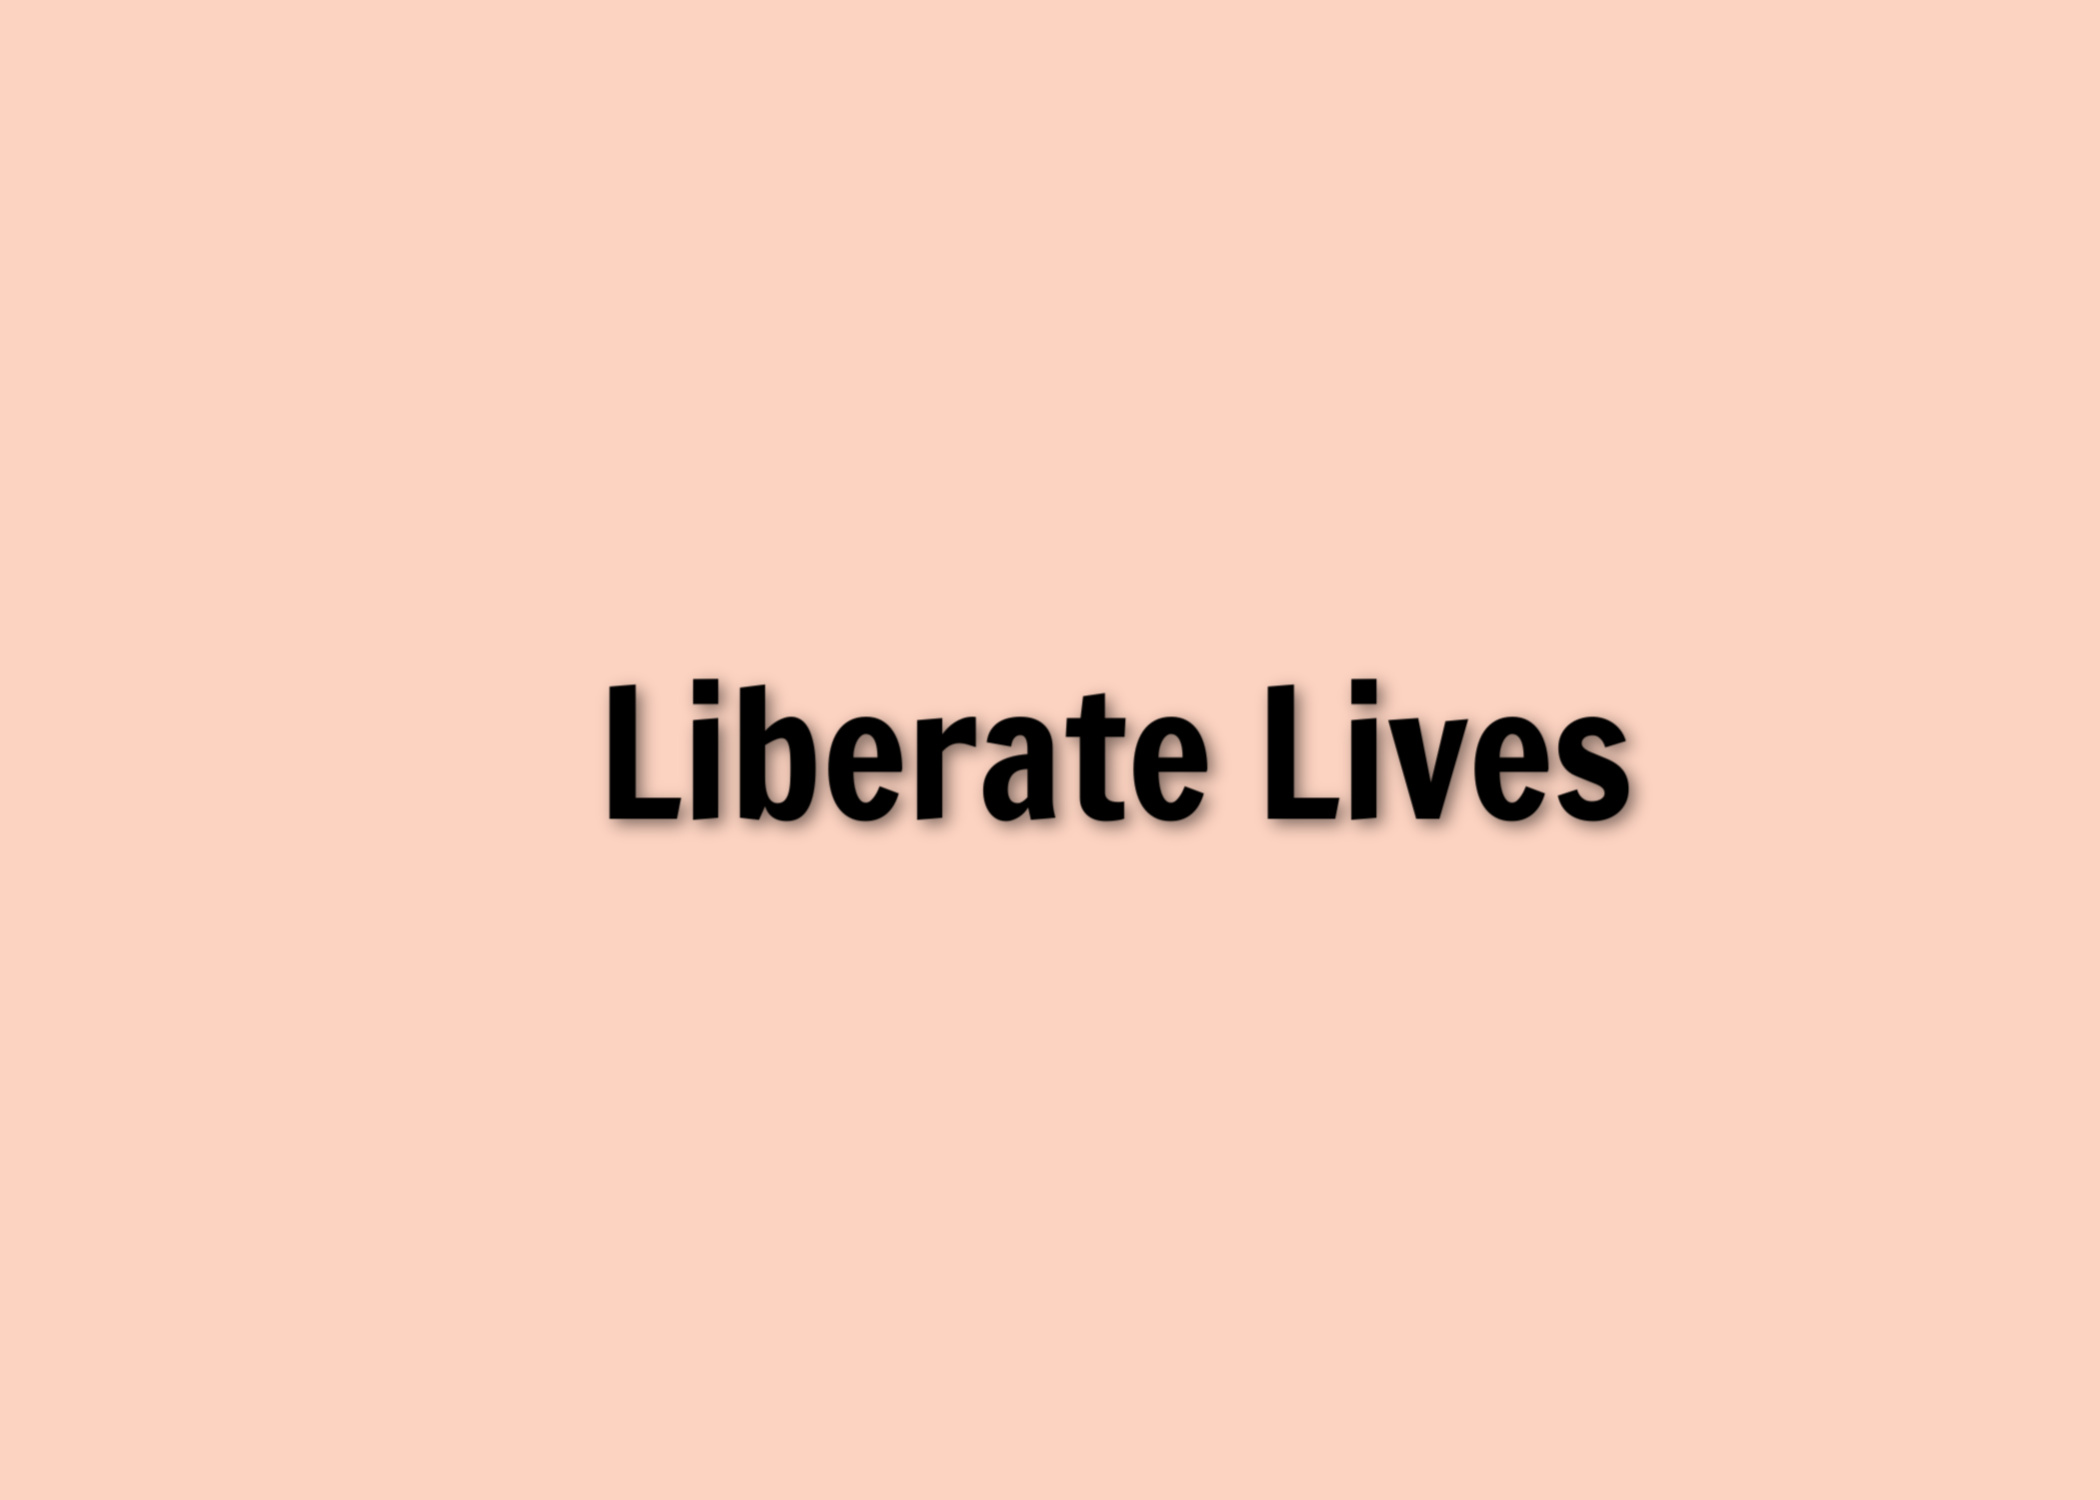 Liberate Lives